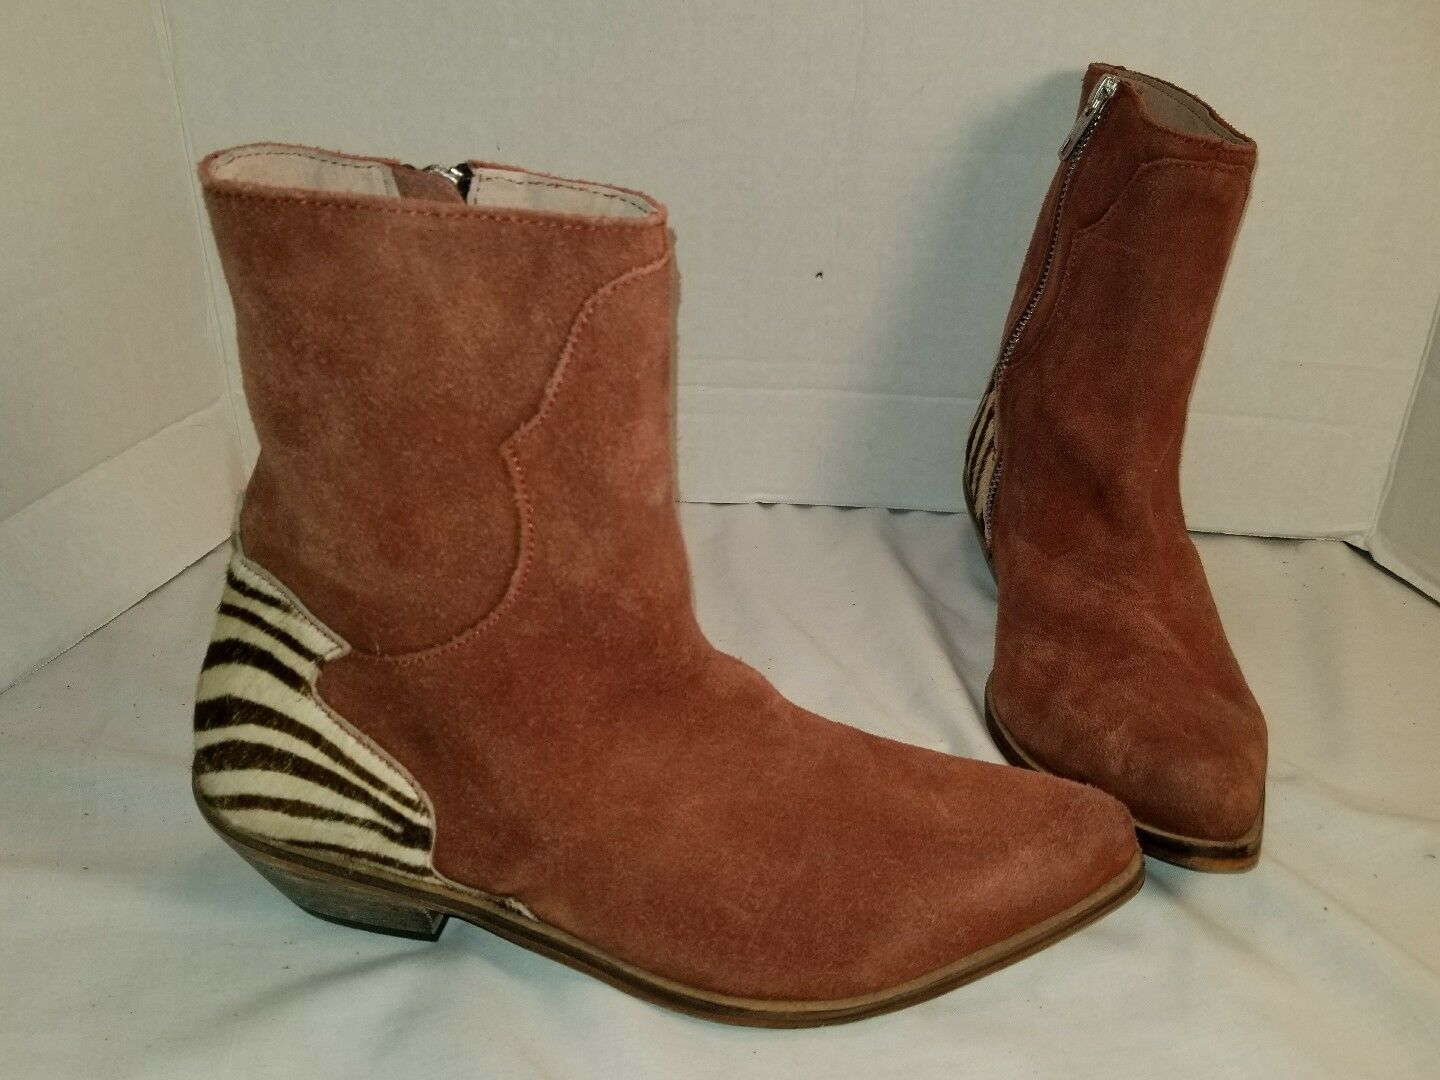 ANTHROPOLOGIE FREE PEOPLE LAST OUTLAW RUST SUEDE ANKLE BOOTS US 6